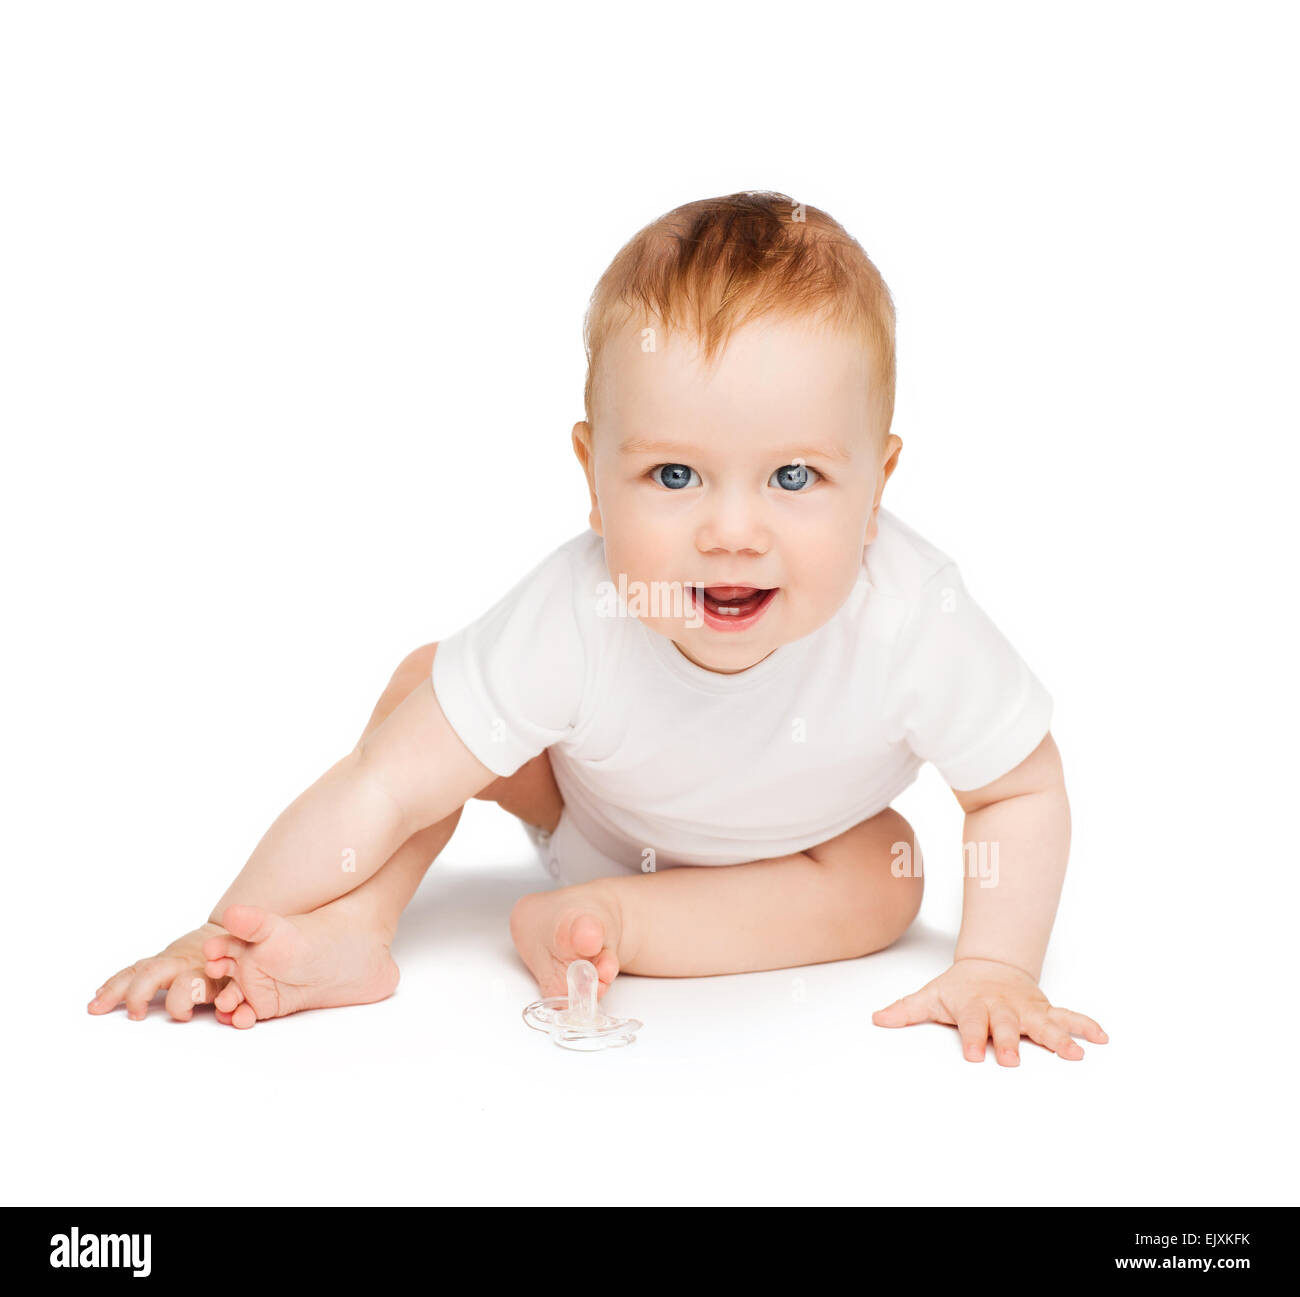 smiling baby sitting on the floor - Stock Image